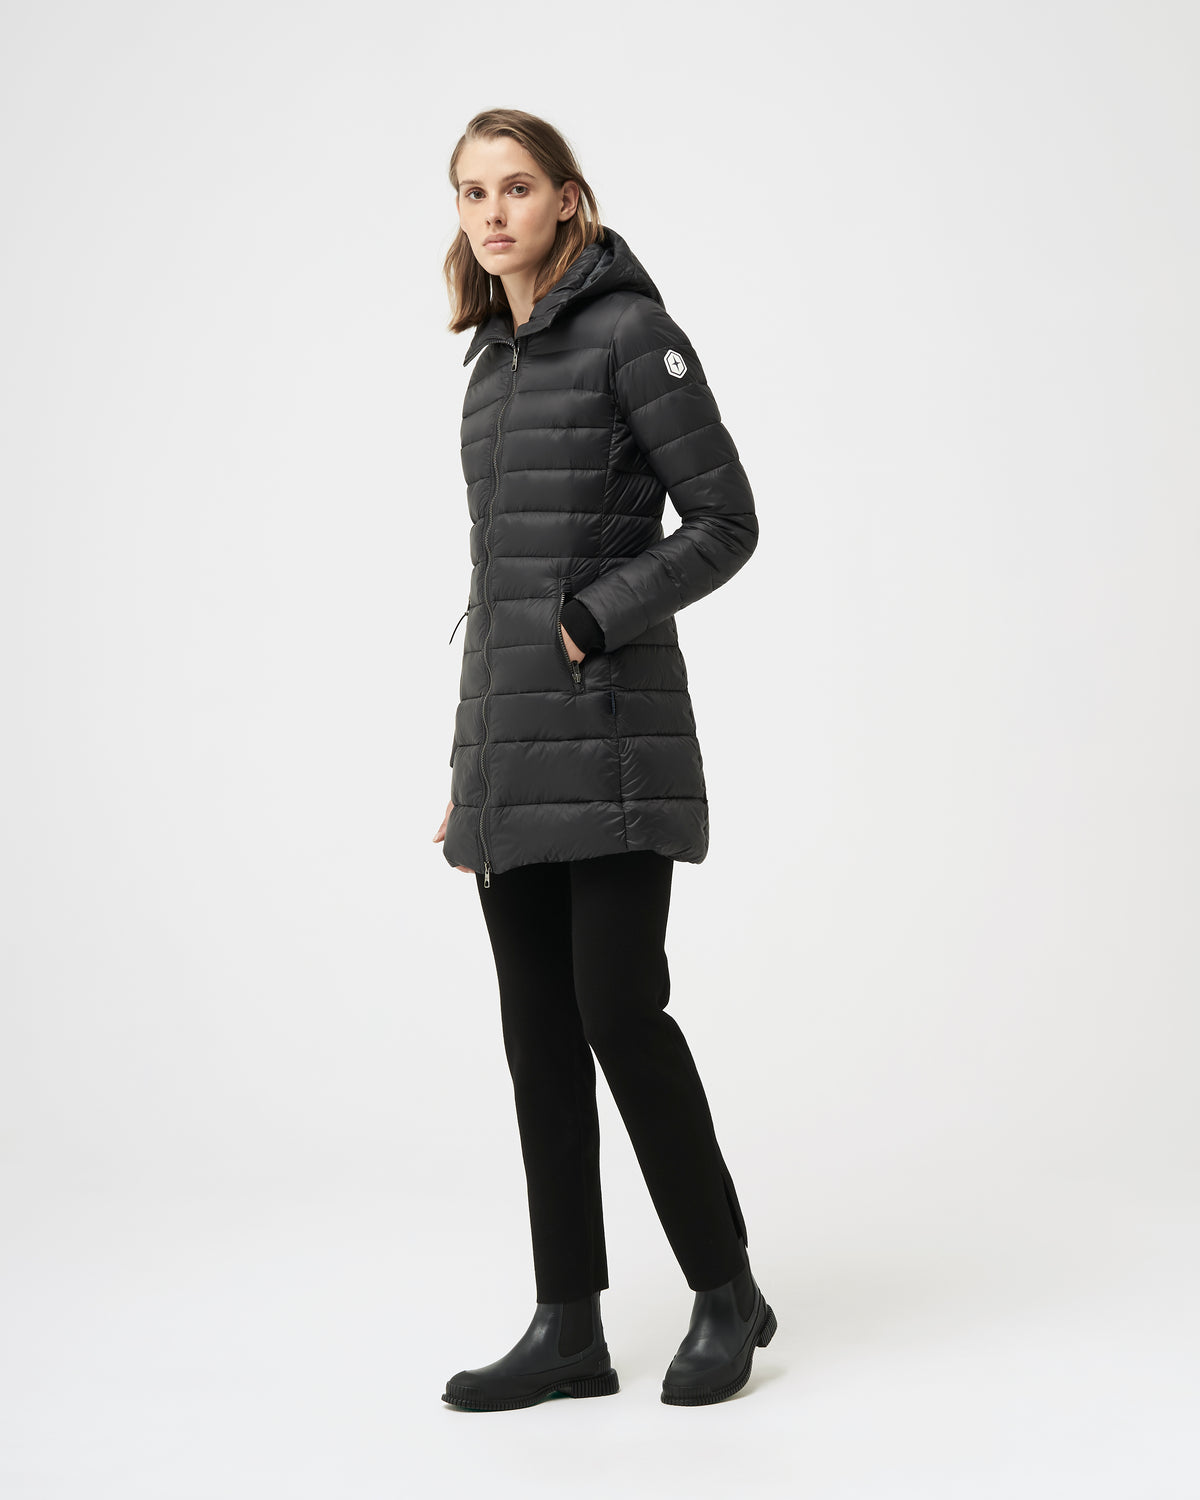 Quartz Co. - Canadian Made Winter Jackets | Lausanne | Manteau Transition | Side